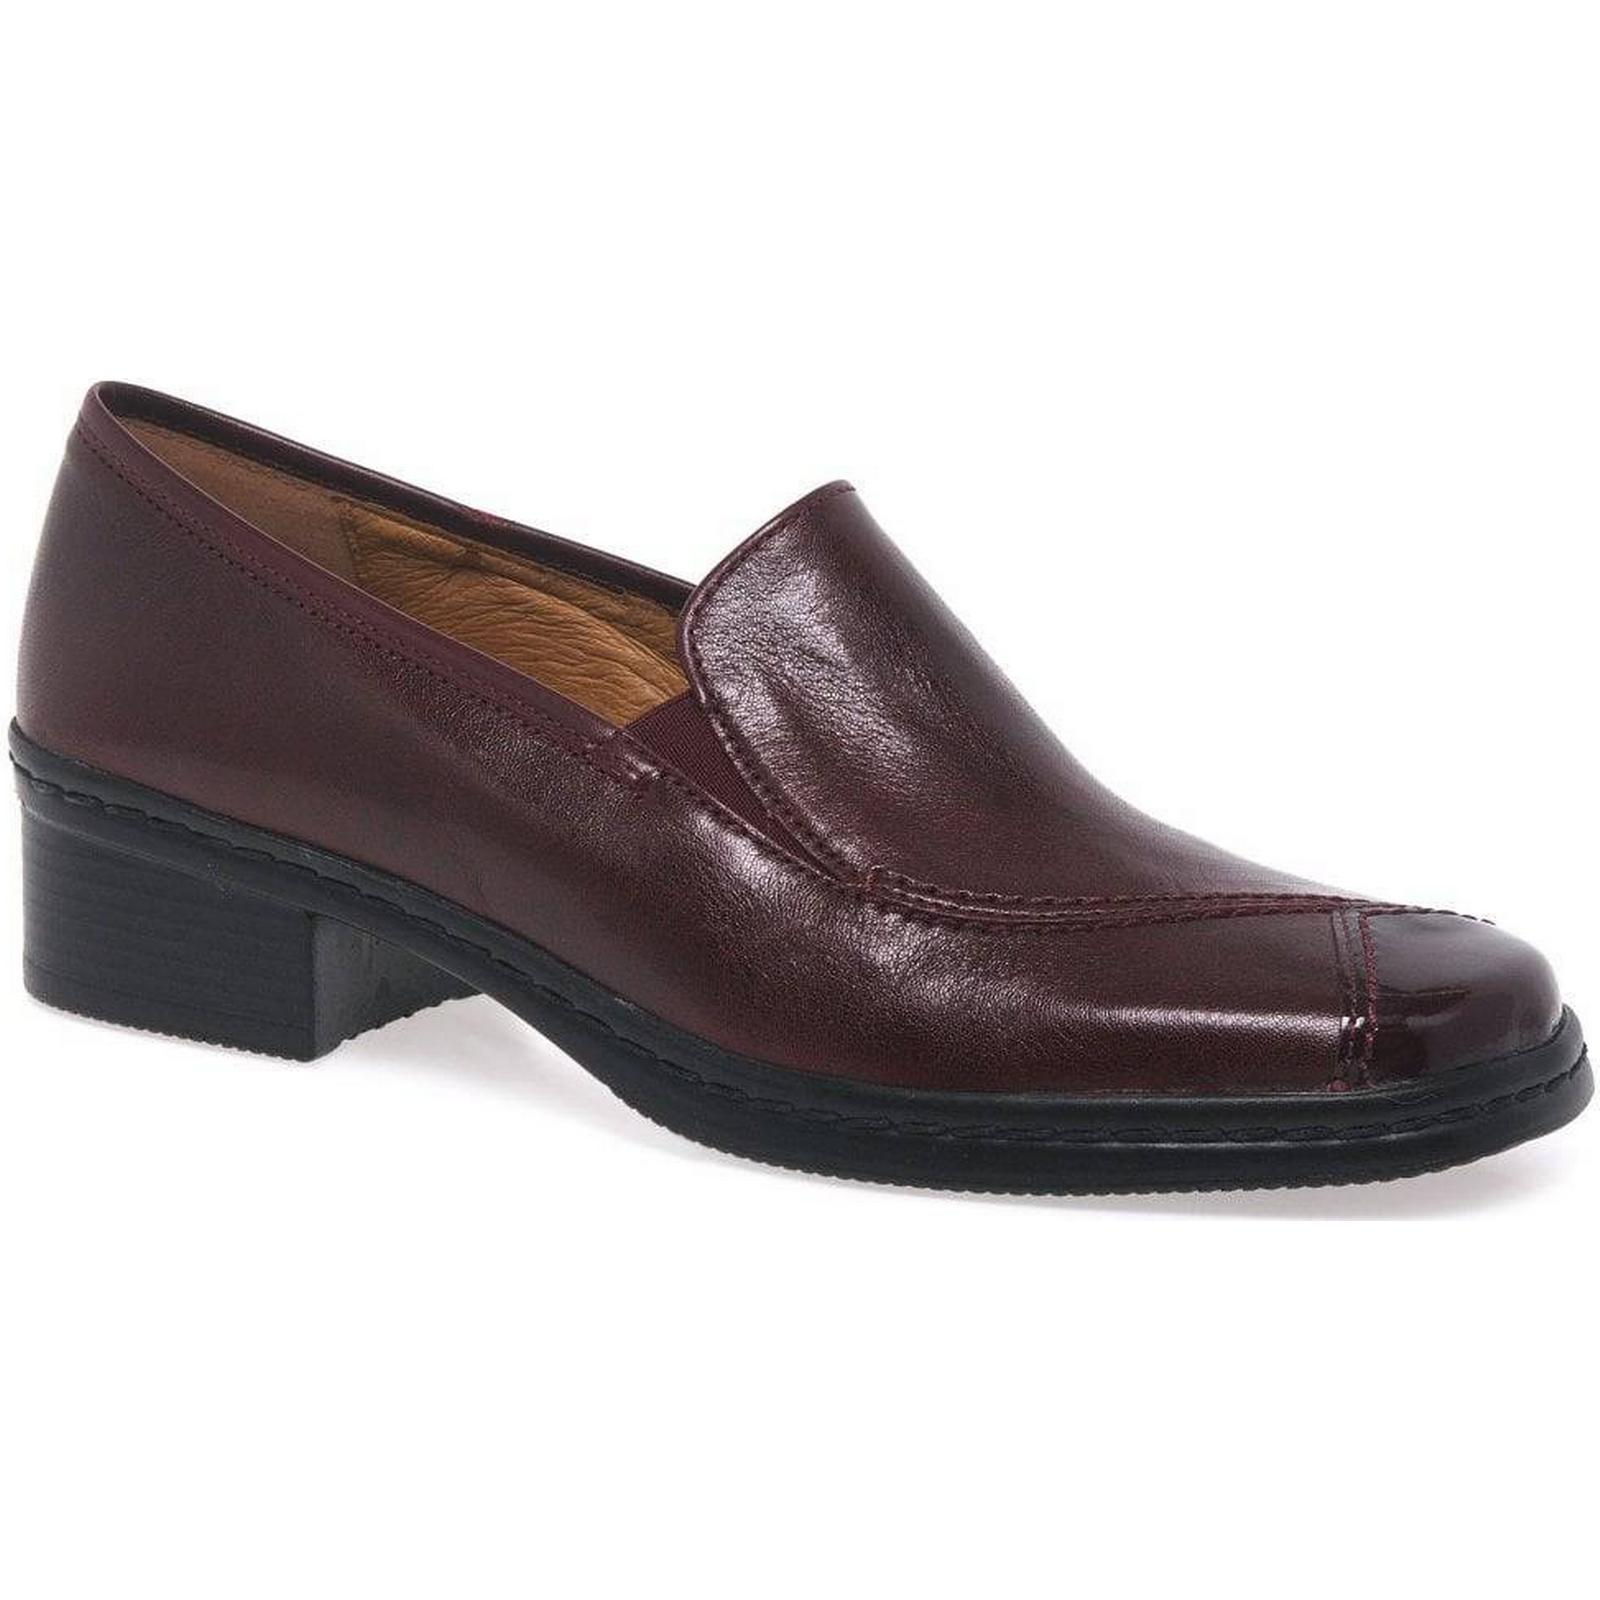 Gabor Frith Womens Red/Patent, Casual Shoes Colour: Dark Red/Patent, Womens Size: 5.5 6d13d0